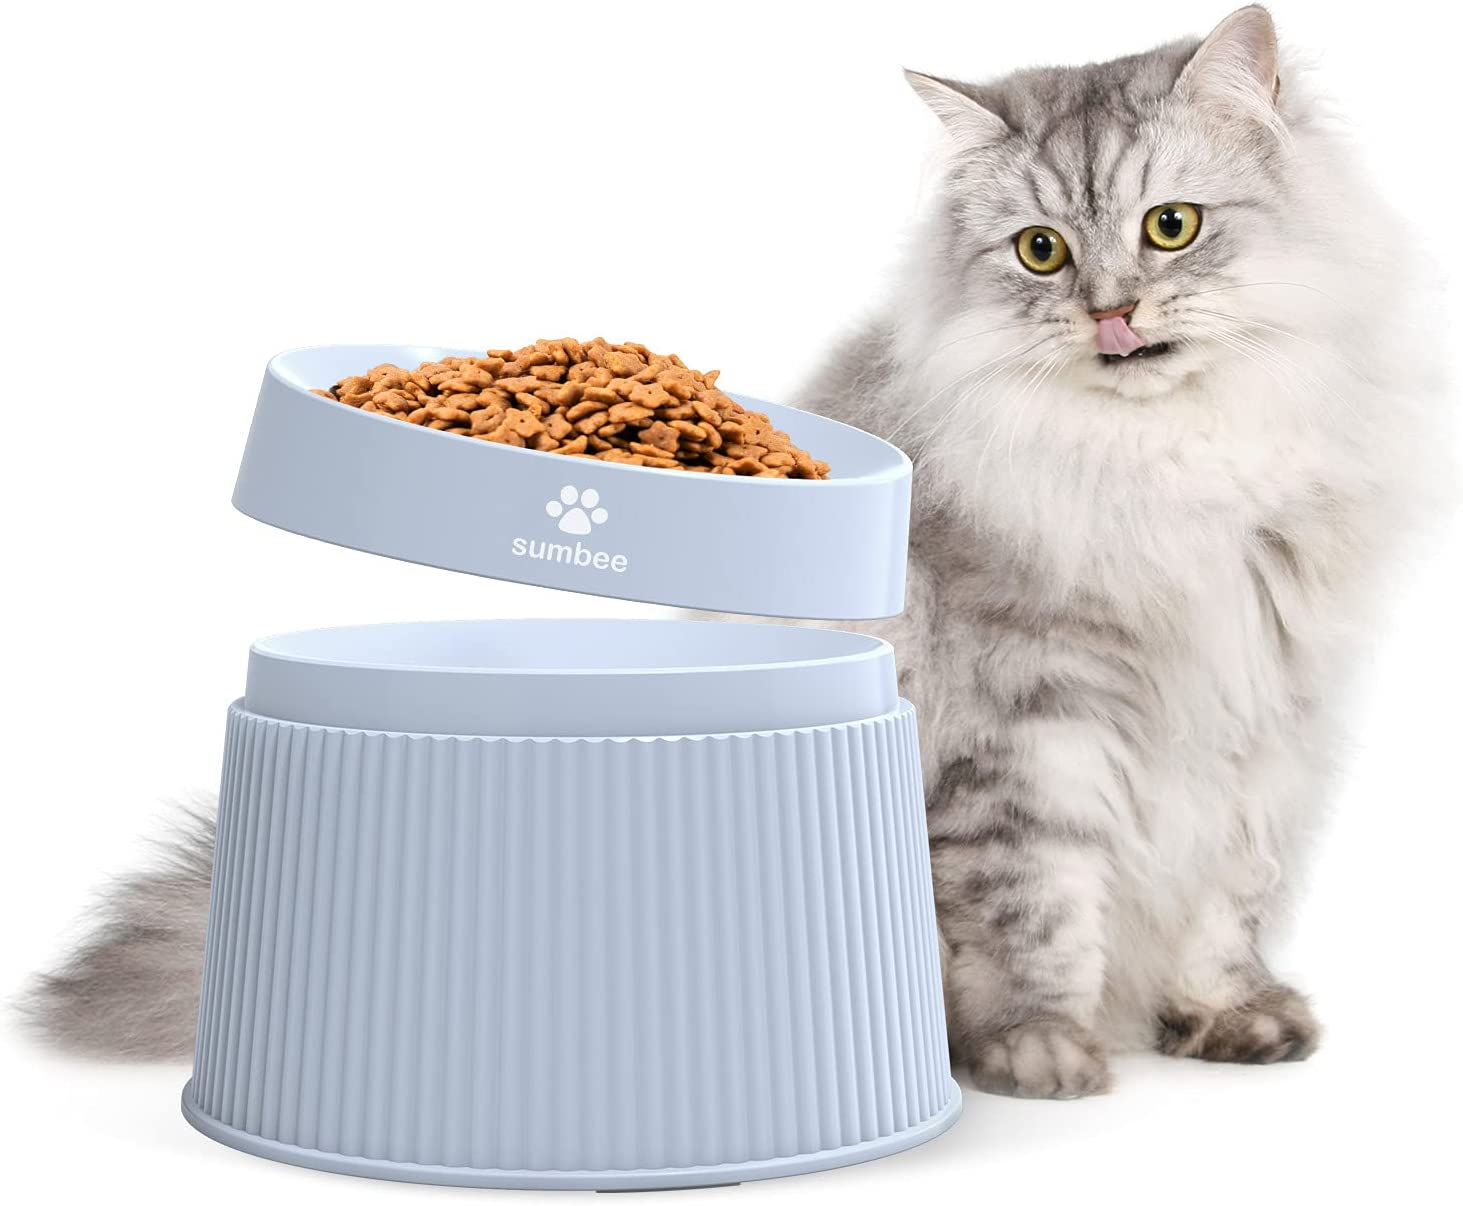 Sumbee Elevated Cat Food Bowls, Raised Small Dog Bowl, Cat Dishes for Food and Water, 17° Tilted Widen Feeding Bowls for Cute Pet, Puppy and Kitty